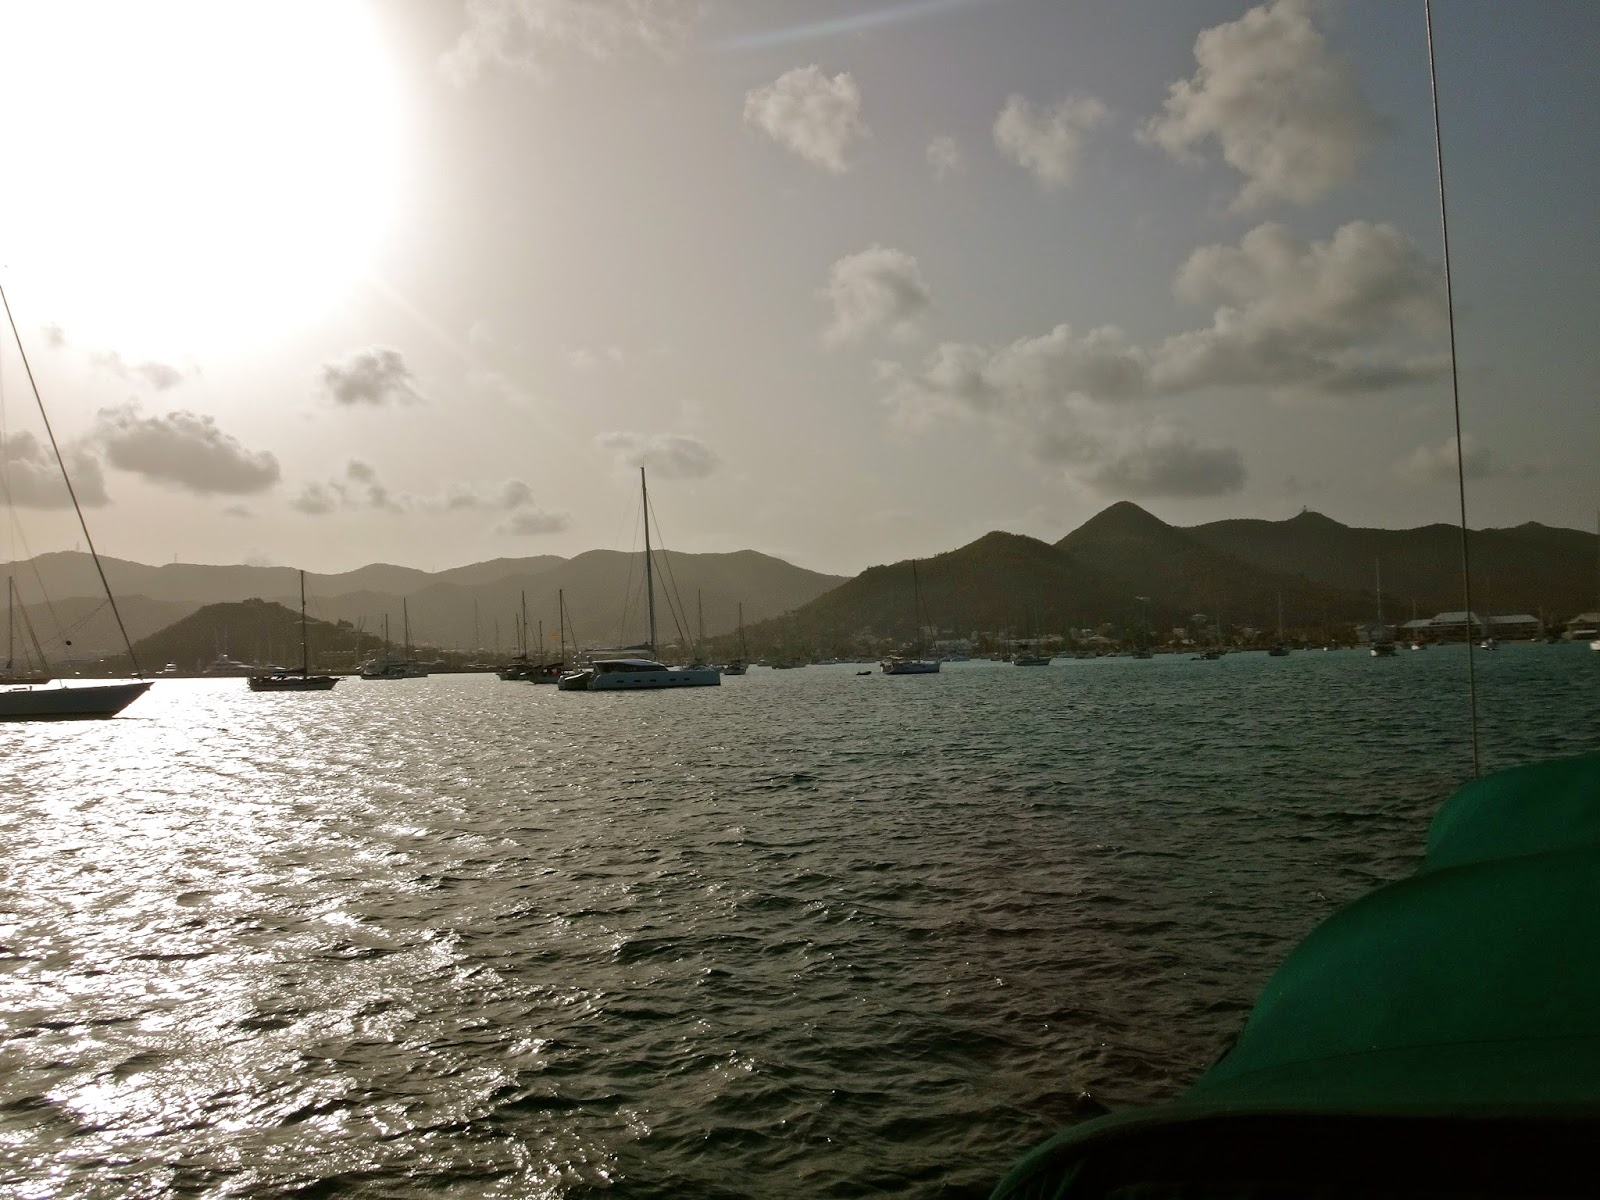 Our sail from the British Virgin Islands to St. Marten went smooth and we  arrived around mid-night in Marigot Bay, we laid the anchor and went to bed.